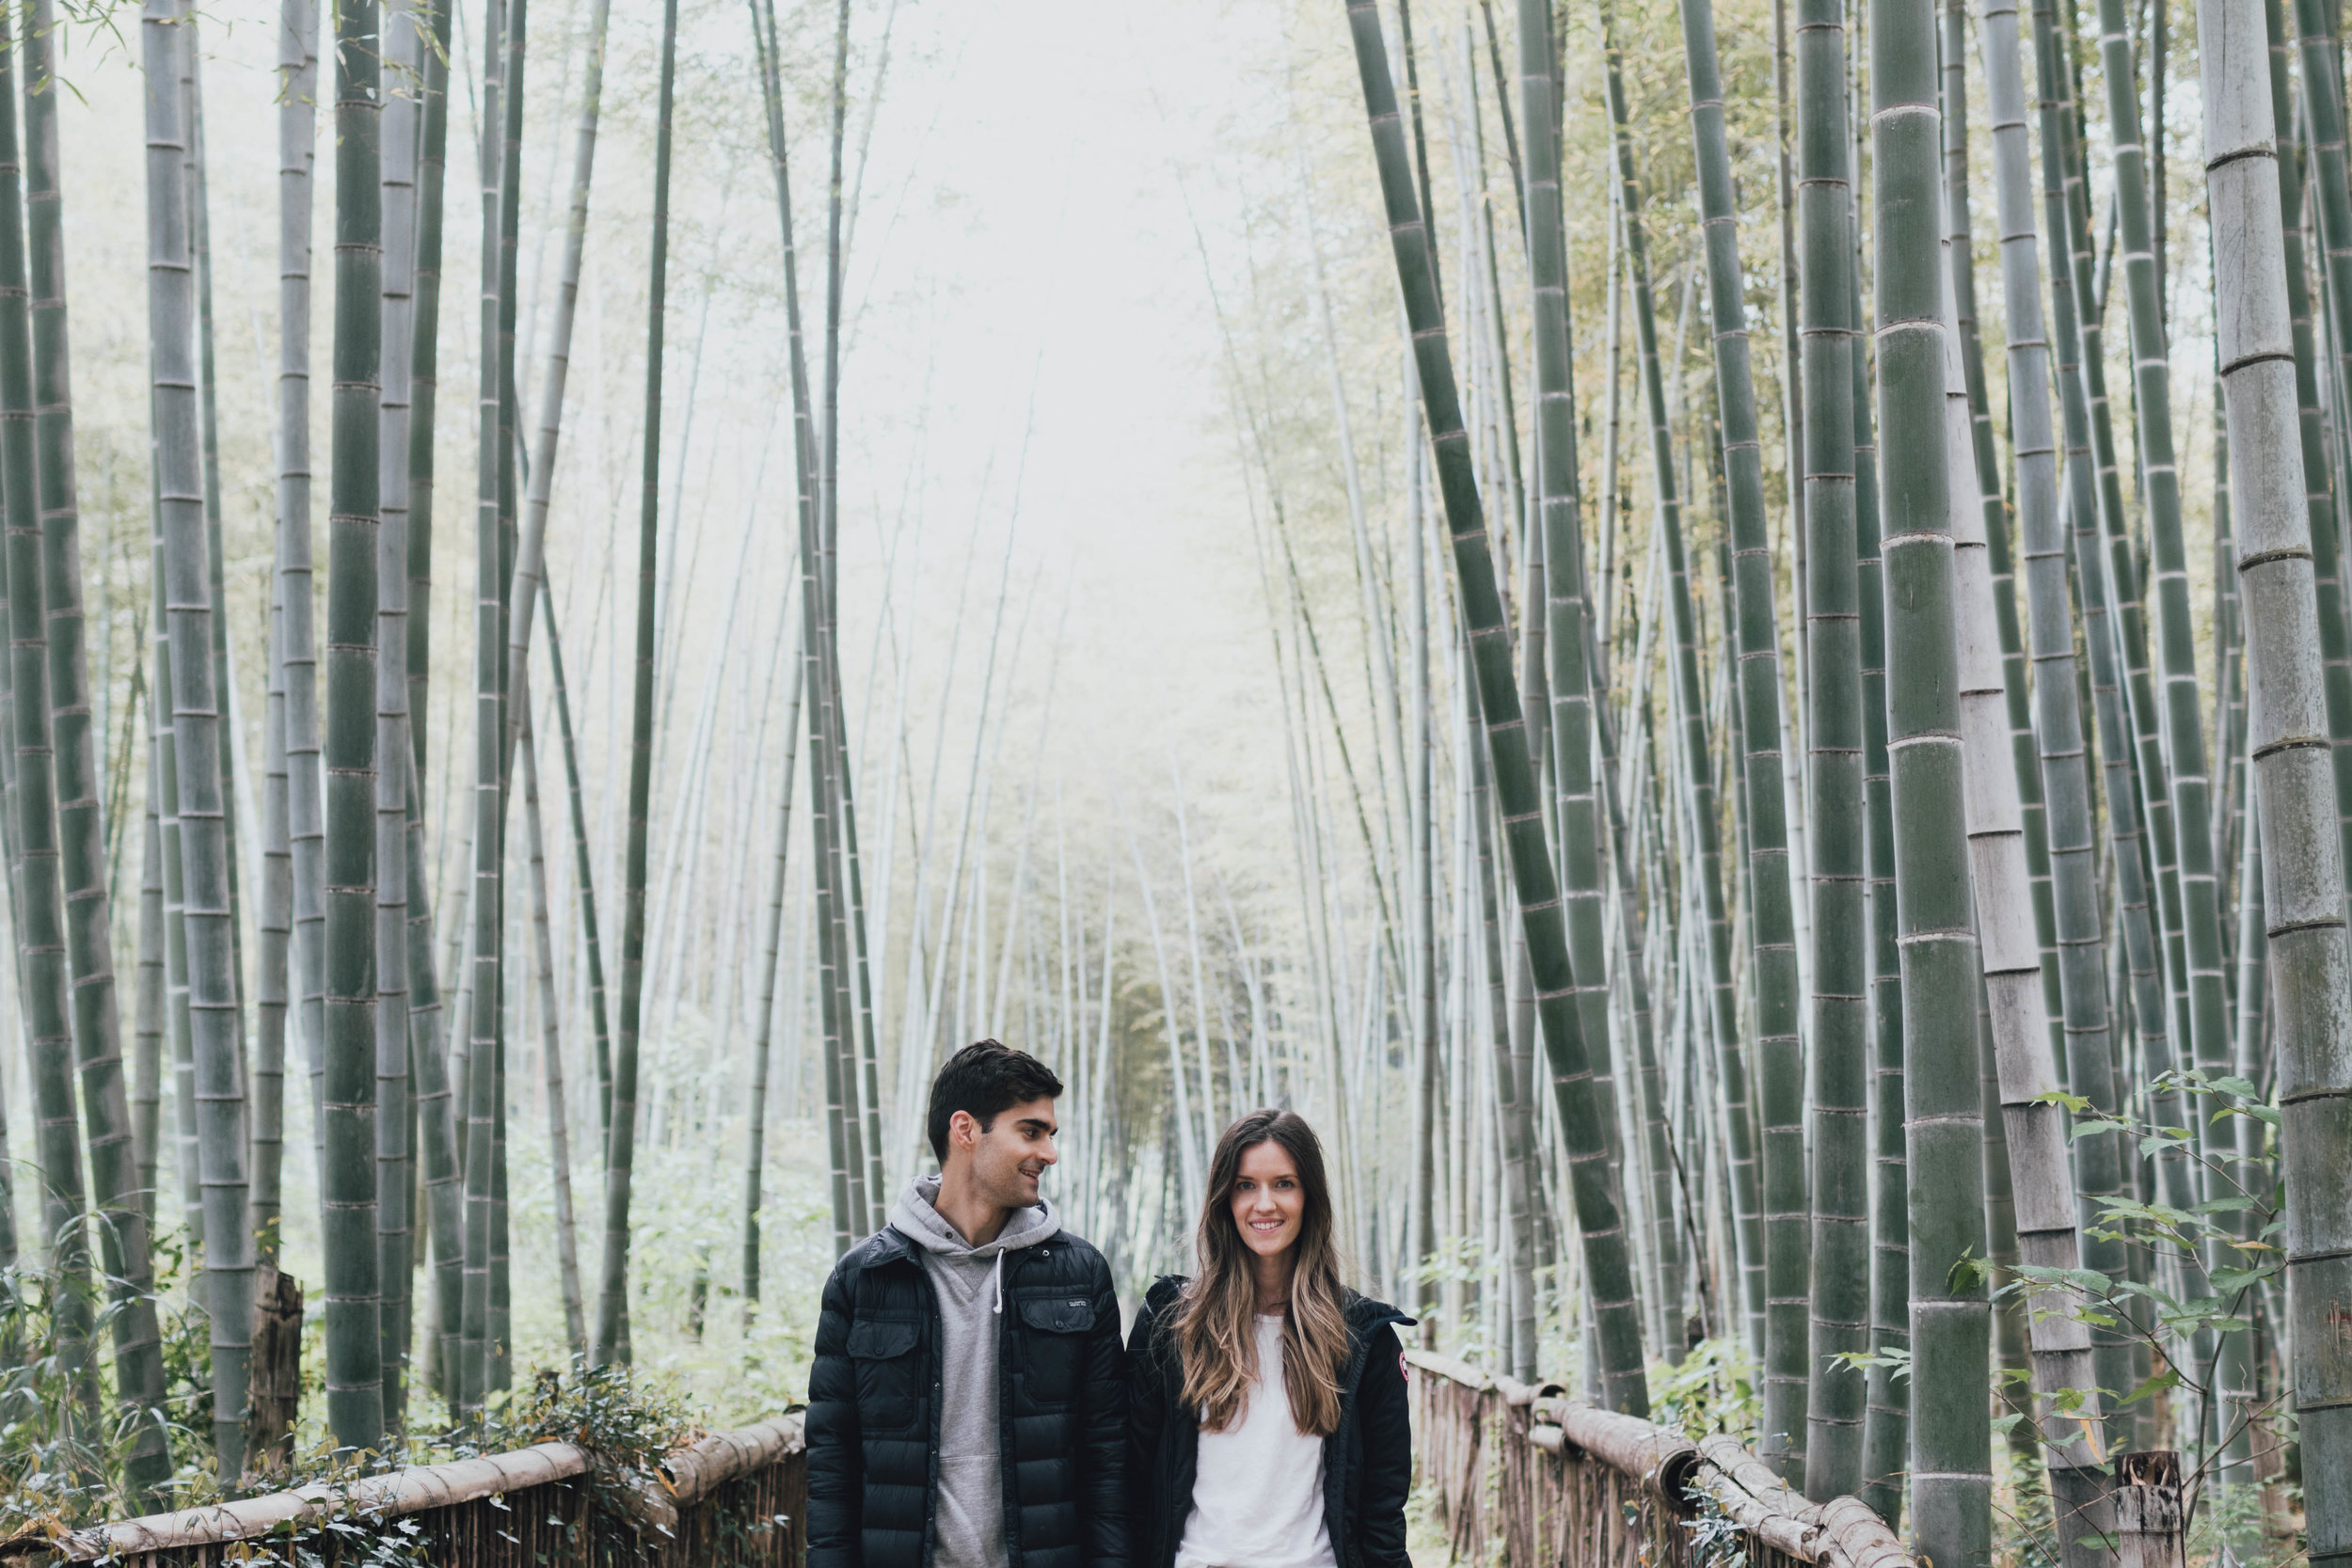 bamboo-forest-photos-by-samantha-look.jpg